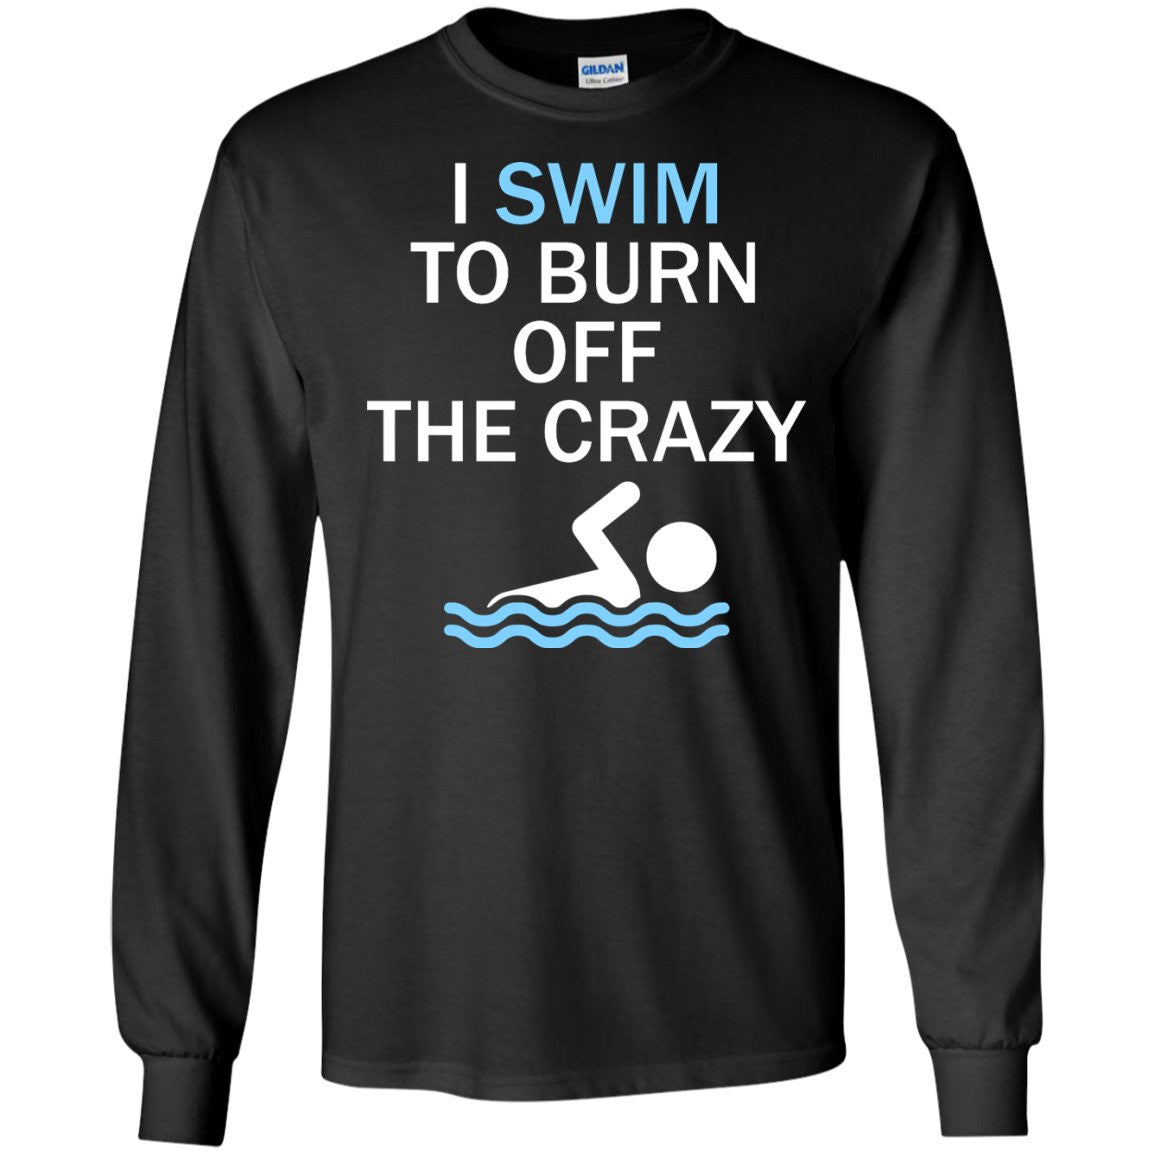 I swim to burn off the crazy Competitive Swimming Shirt  LS Ultra Cotton Tshirt